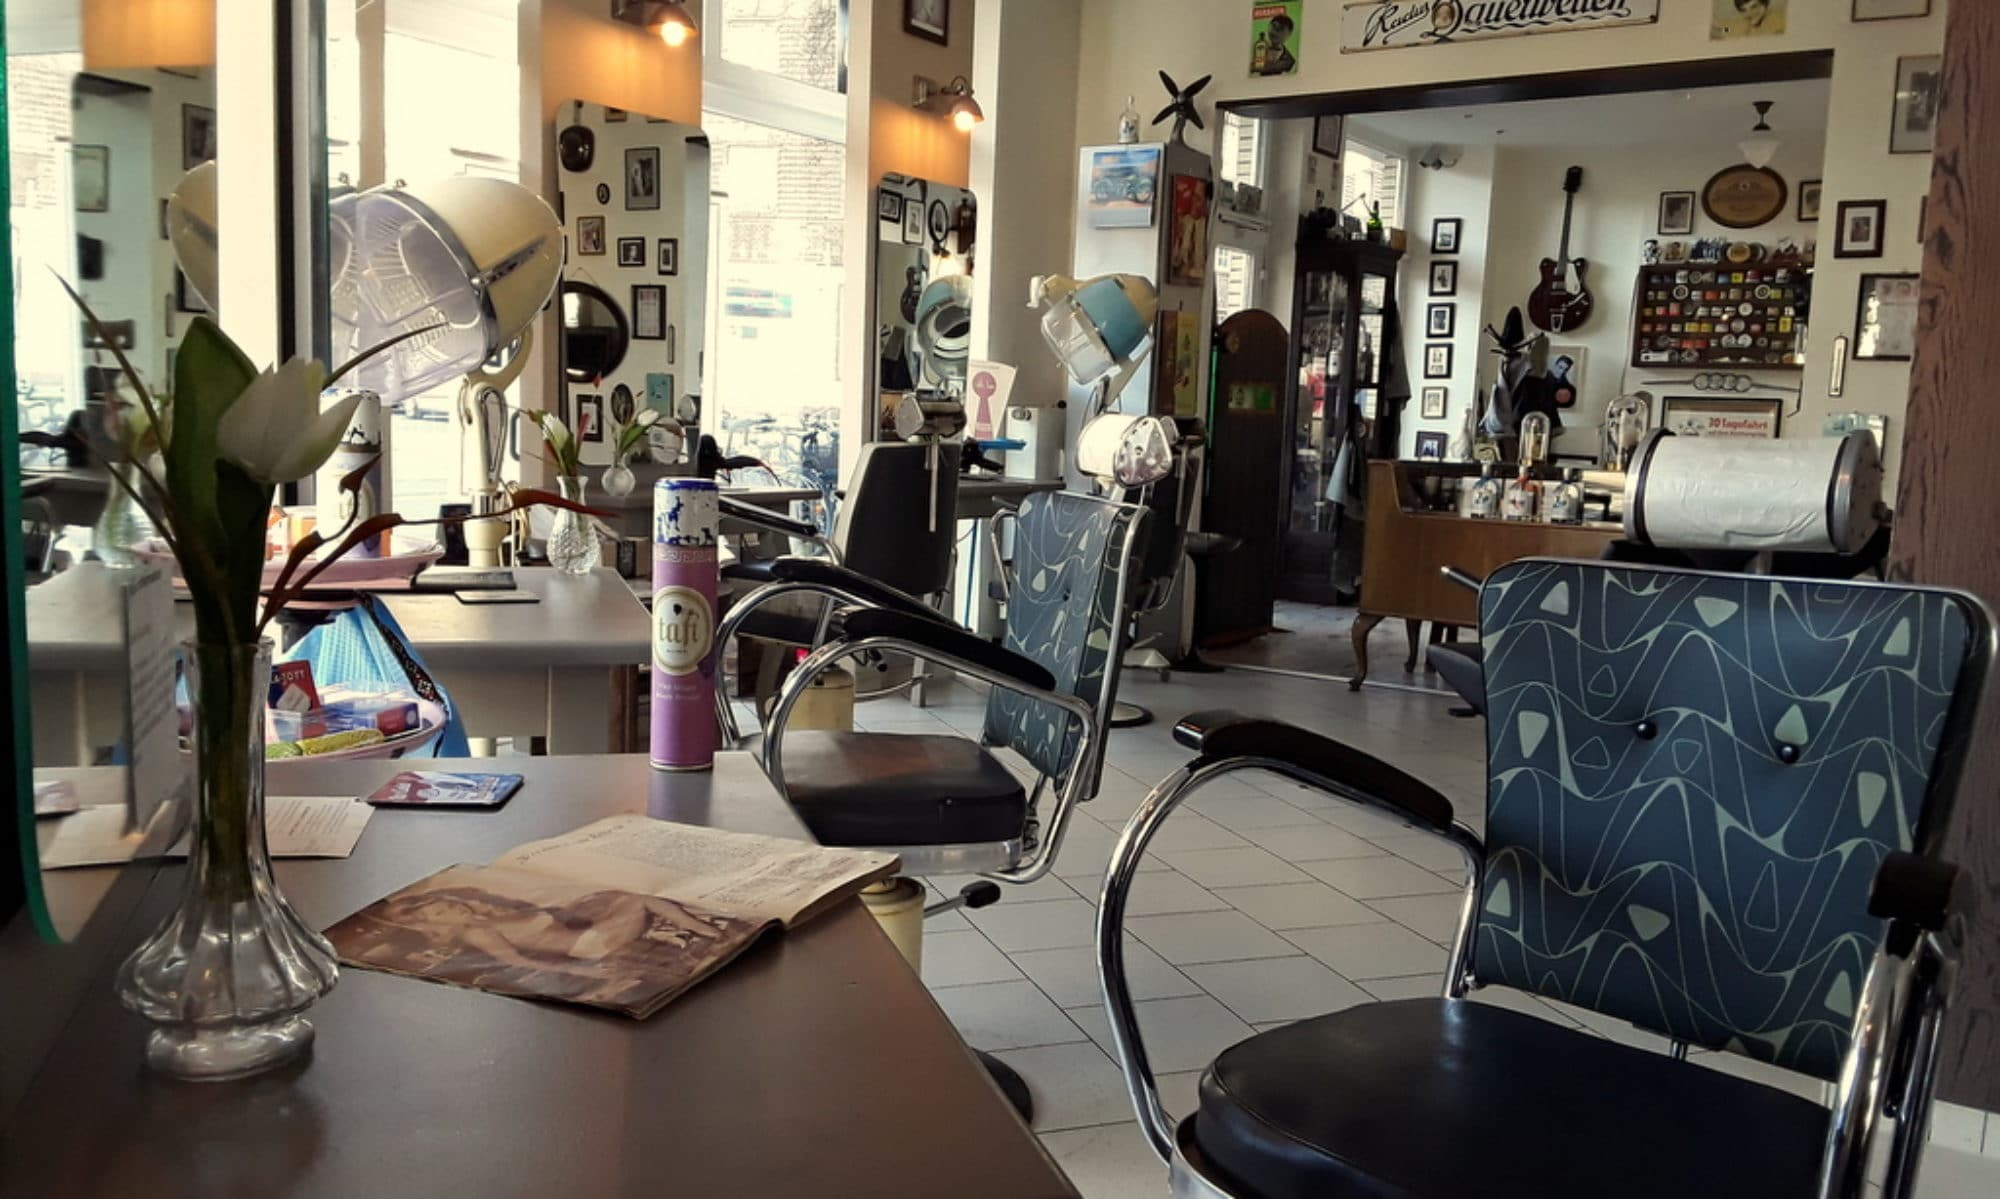 Cut Corner Hair & Barbershop